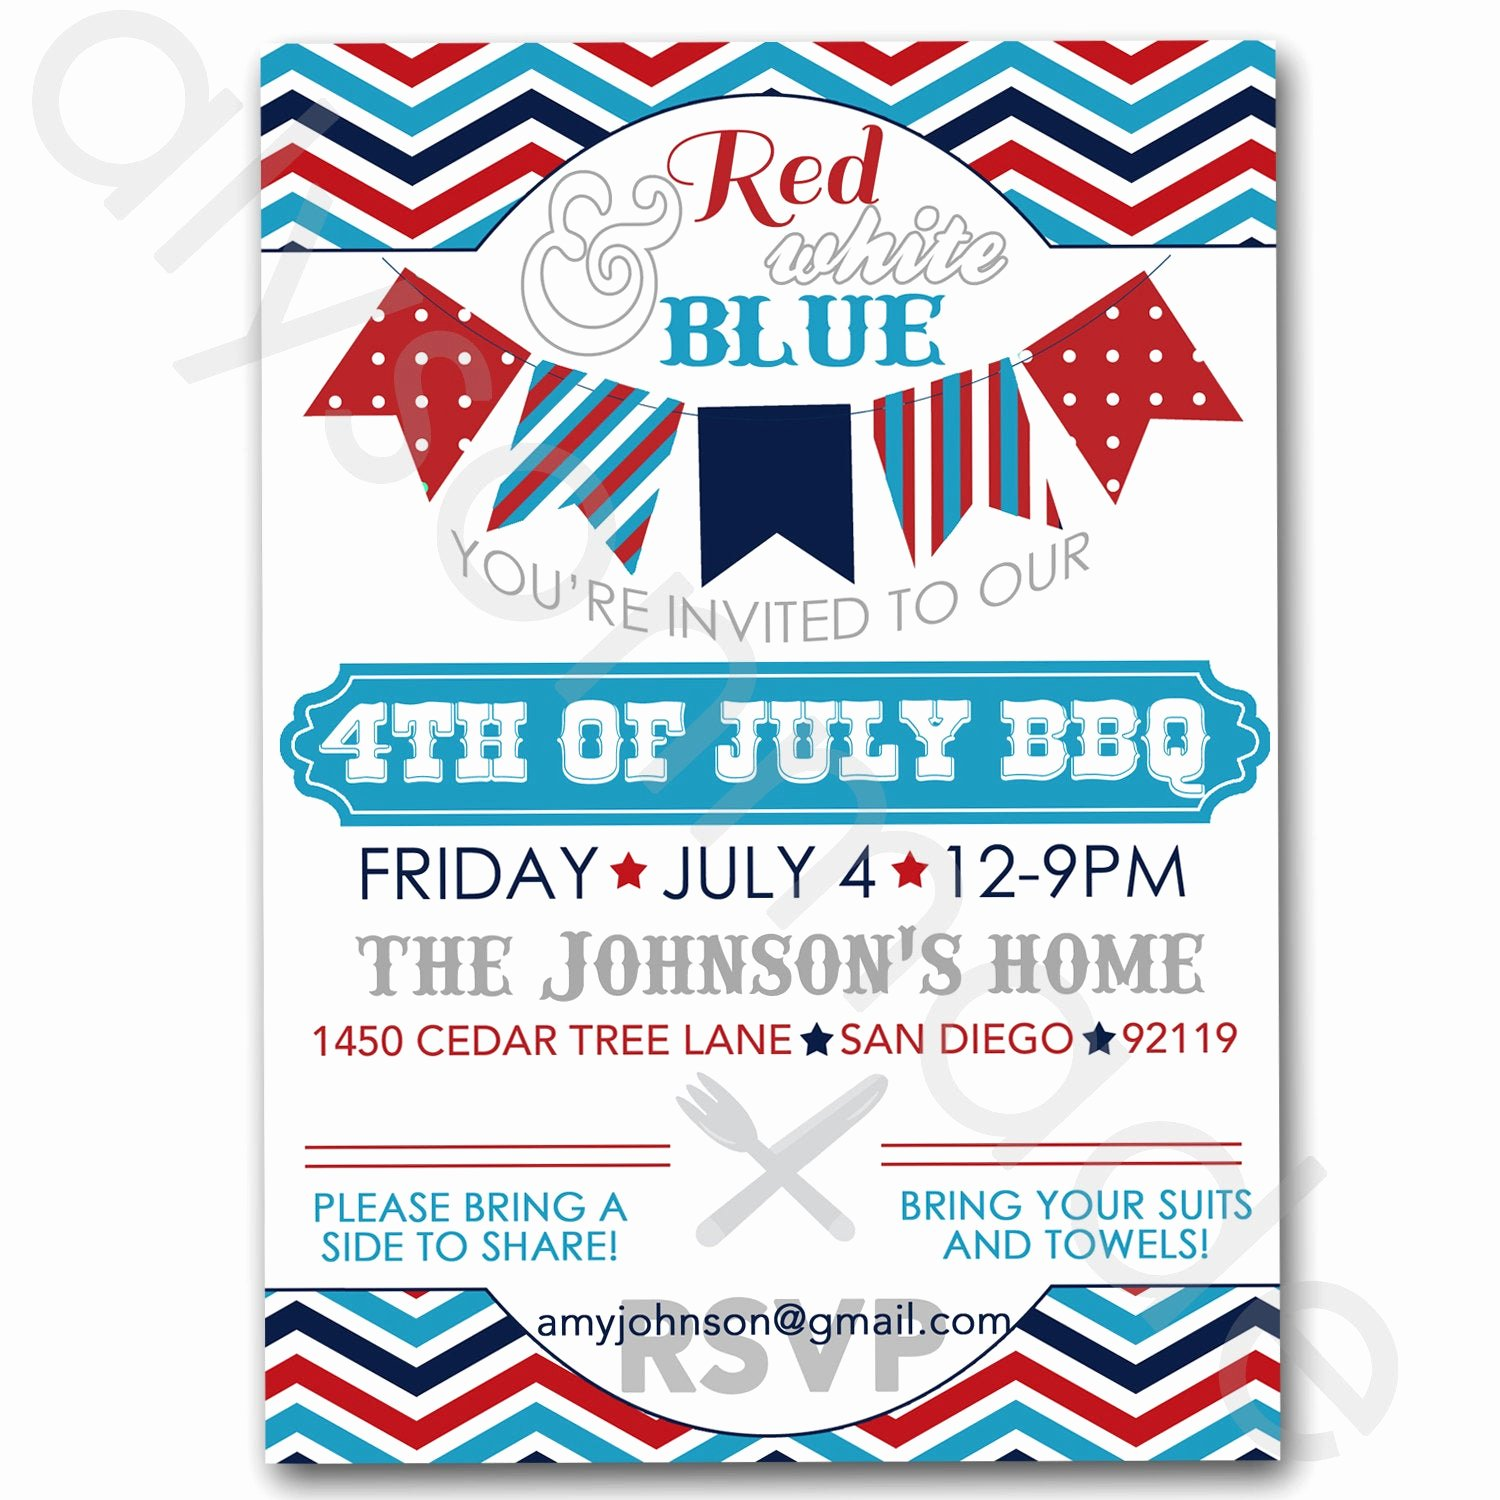 Potluck Bbq Invitation Wording Awesome July 4th Bbq Potluck Invitation Customized and Personalized